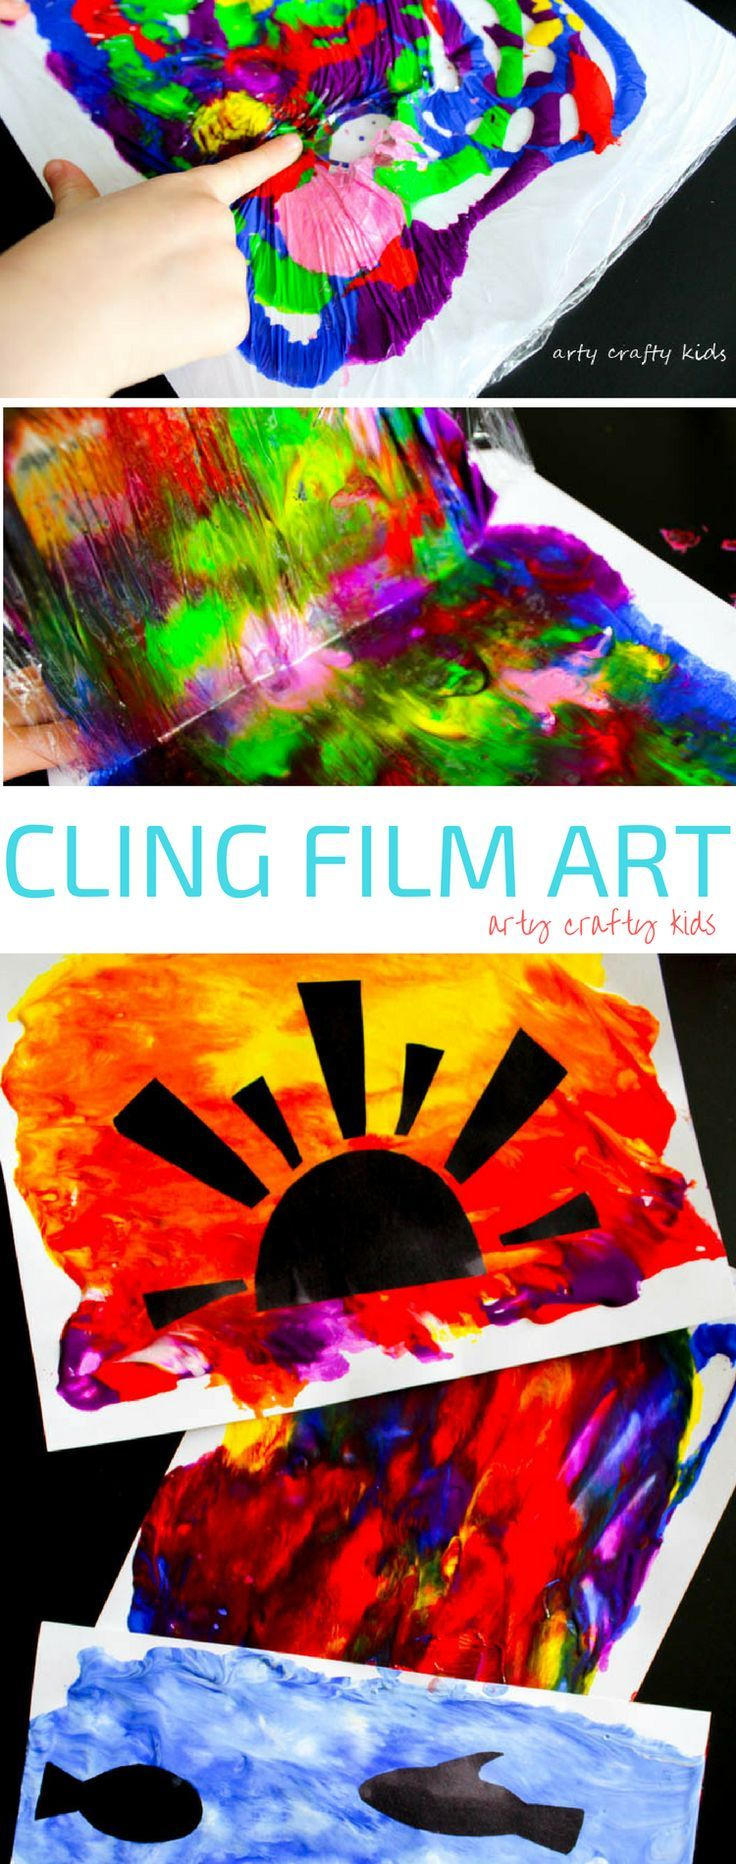 Arty Crafty Kids | Art | Cling Film Art | A fun art idea for kids that great for colour mixing and mess free sensory art.